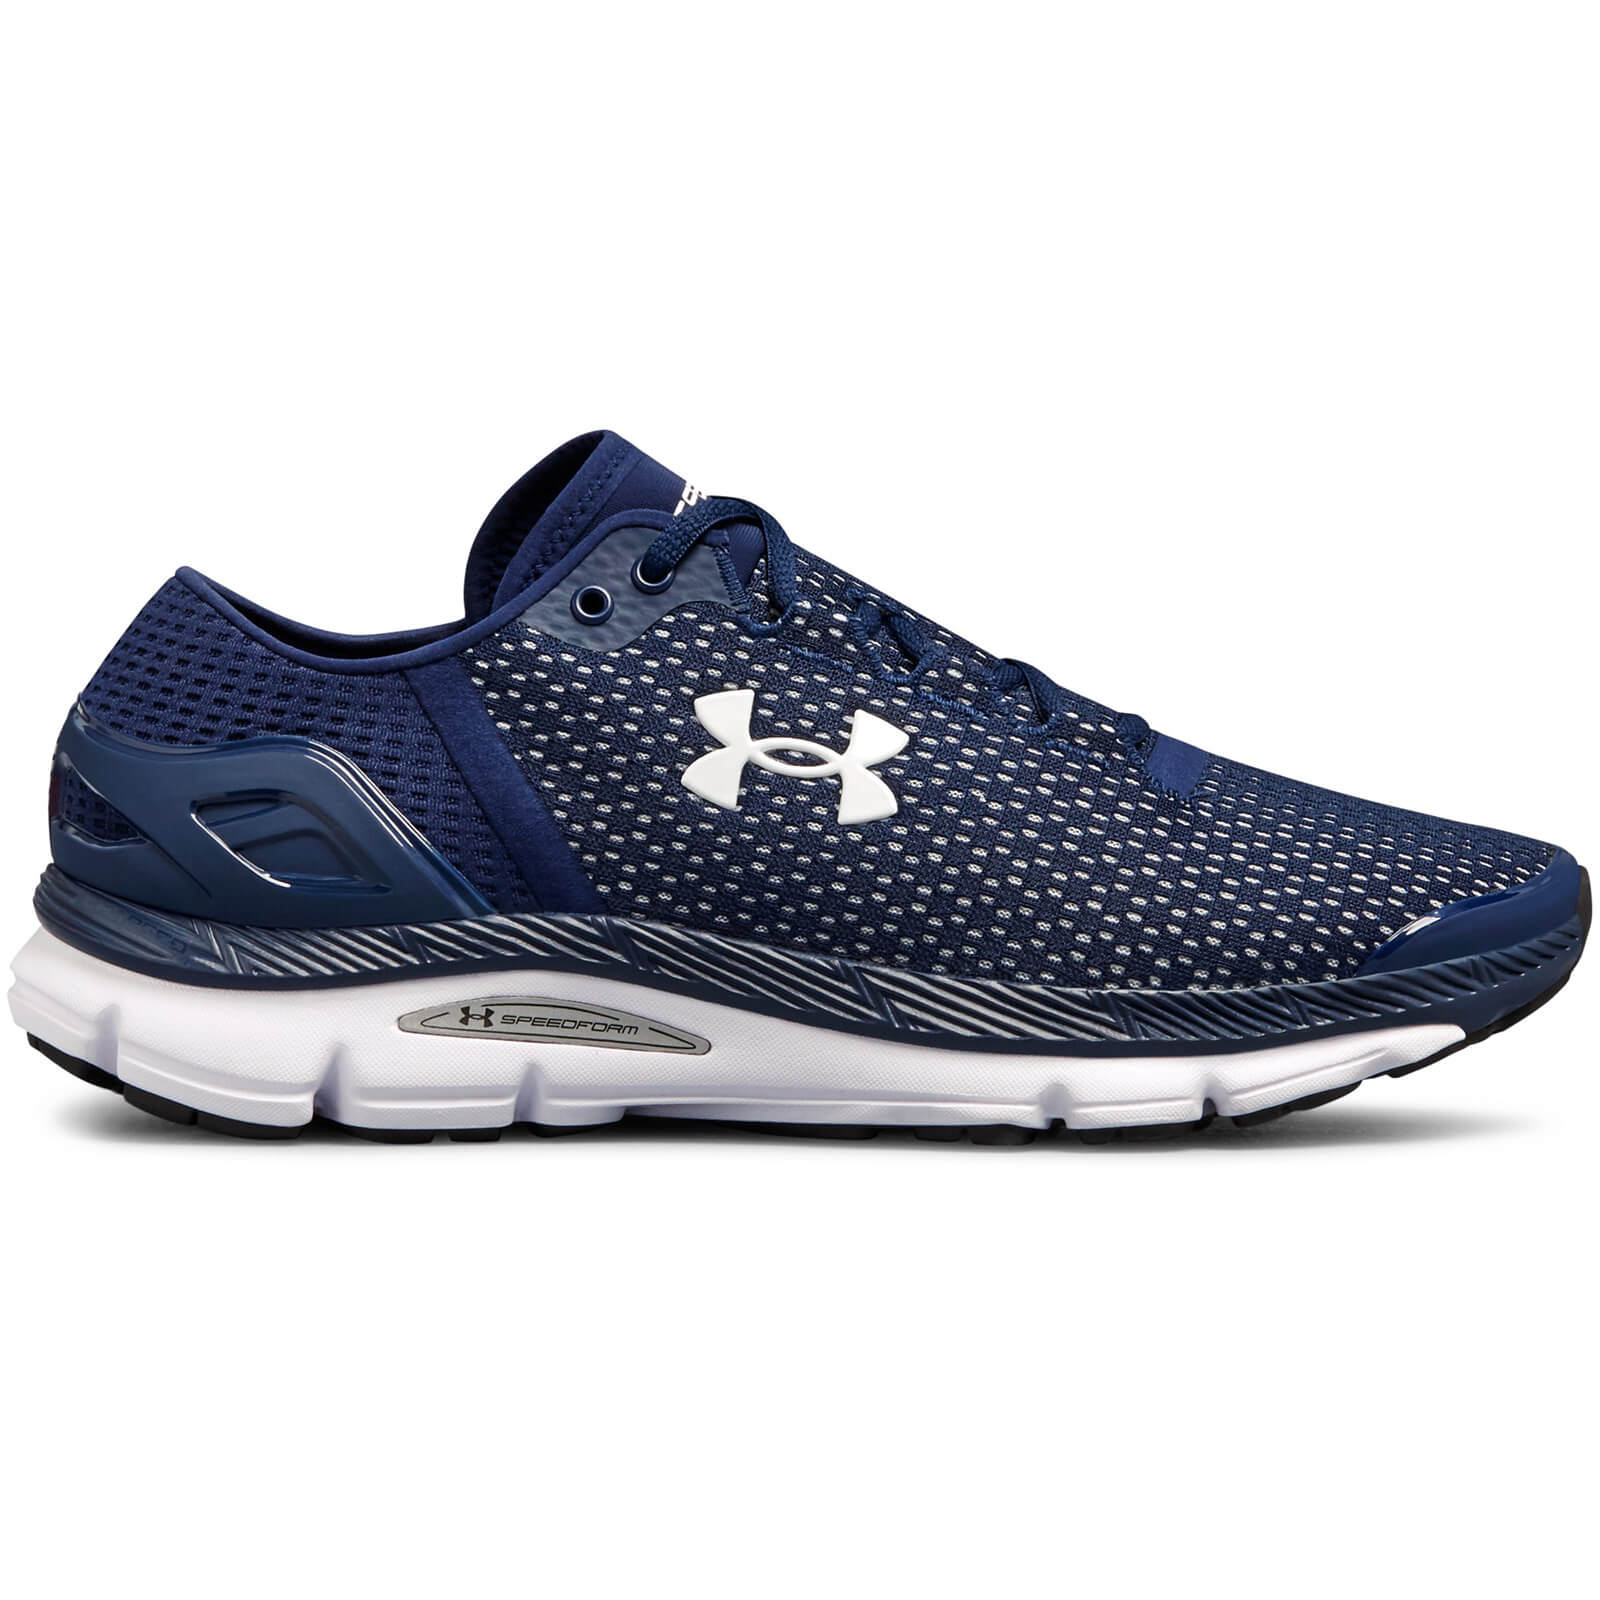 under armour shoes blue and white